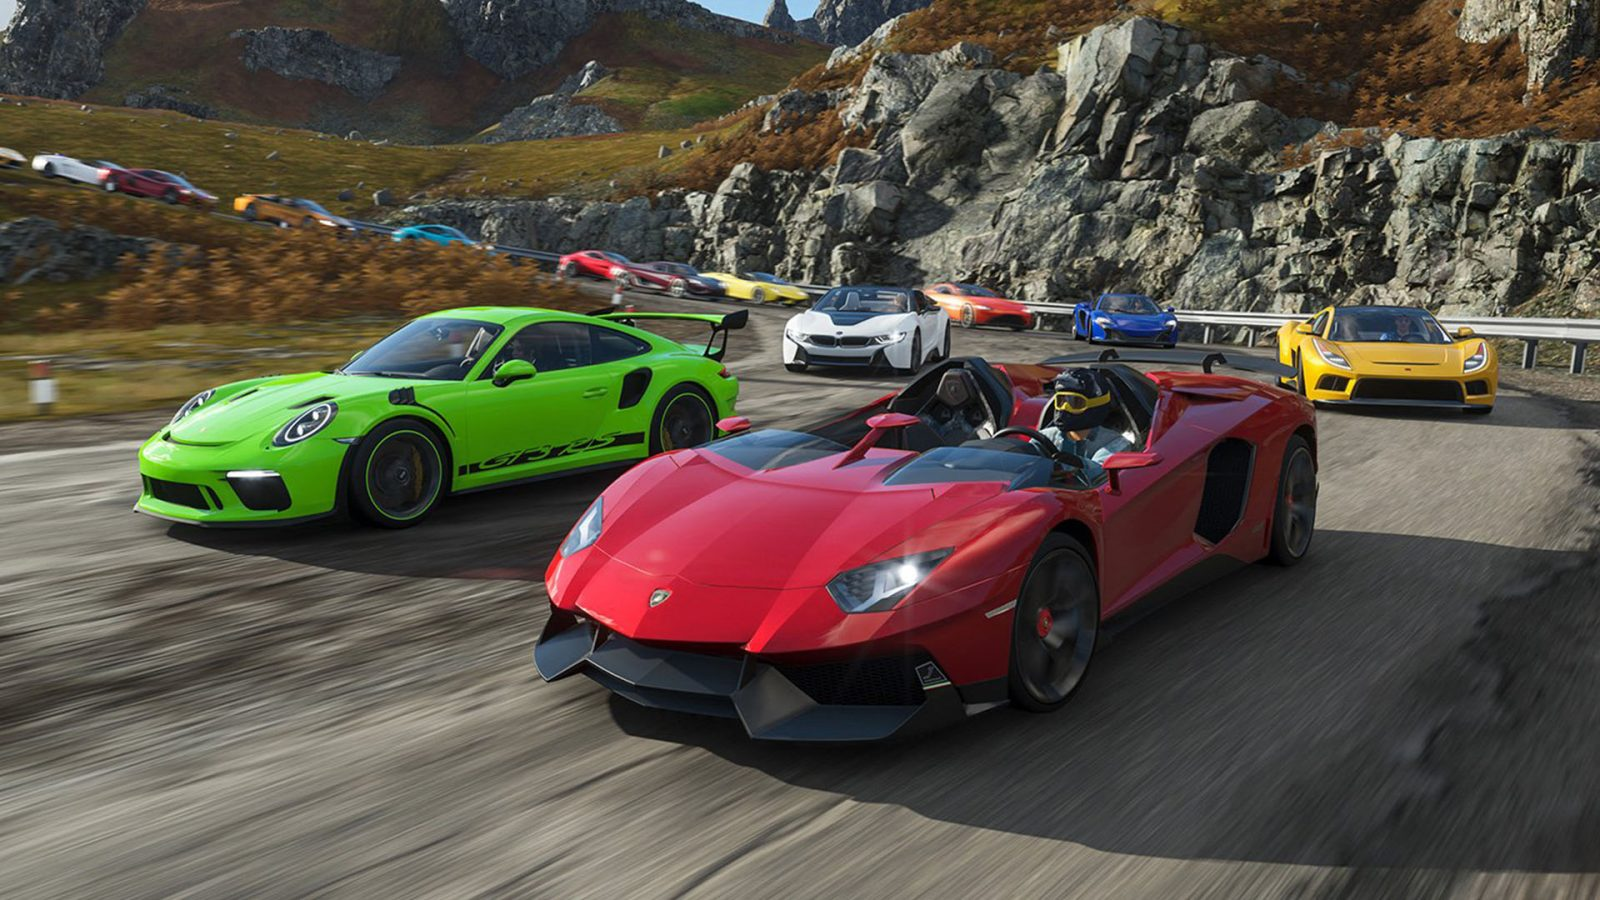 Forza Motorsport 8 details and new features revealed – take a look here